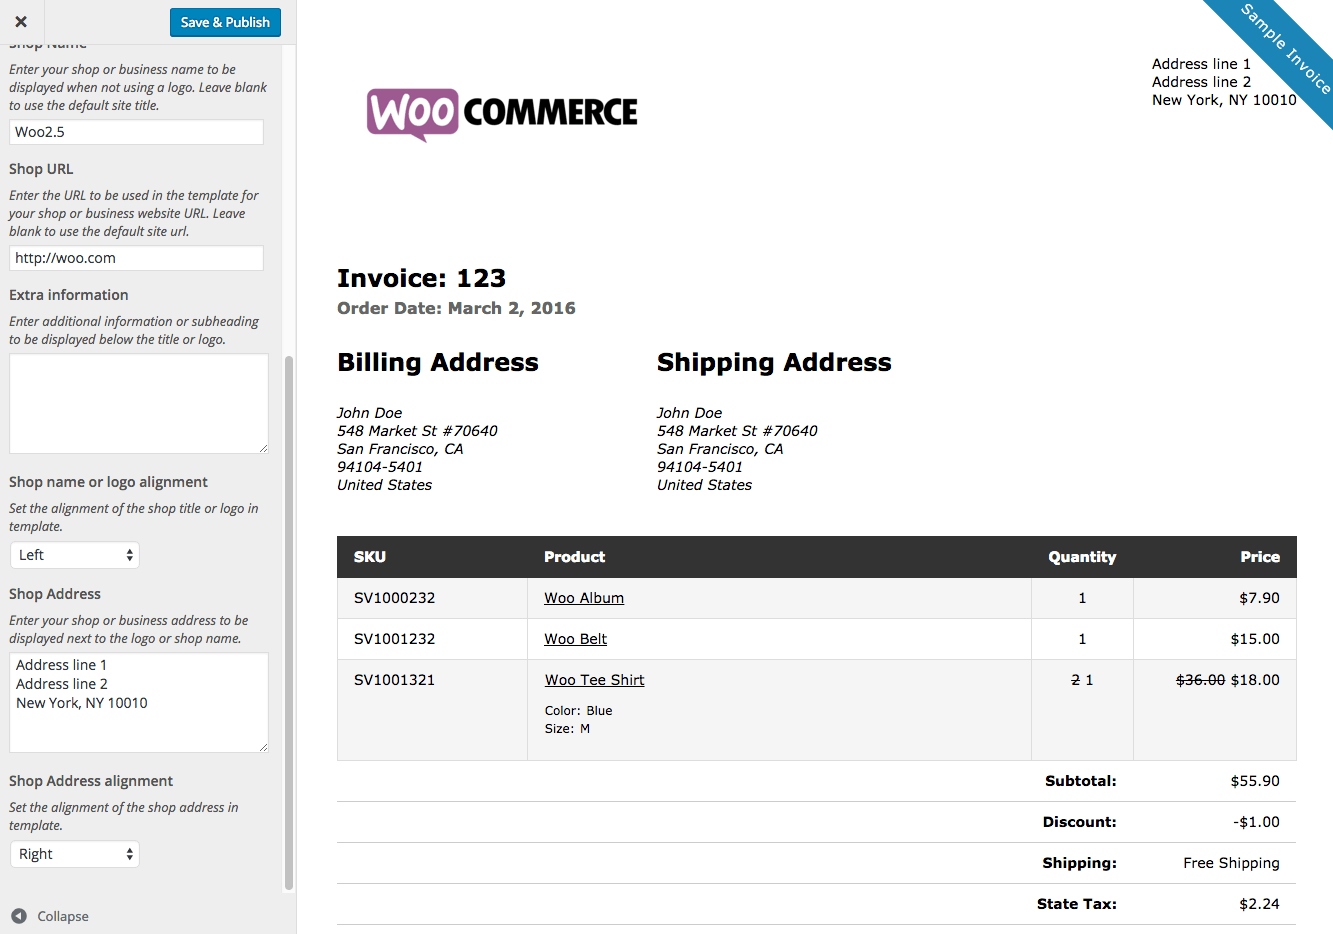 Usdgus  Personable Woocommerce Print Invoices Amp Packing Lists  Woocommerce Docs With Handsome Woocommerce Print Invoices  Packing Lists Customizer With Comely How To Track A Money Order Without A Receipt Also Lotus Notes Return Receipt In Addition Concurrent Receipt Calculator And Custom Sales Receipts As Well As Target Refund Policy No Receipt Additionally Return Receipt Cost From Docswoocommercecom With Usdgus  Handsome Woocommerce Print Invoices Amp Packing Lists  Woocommerce Docs With Comely Woocommerce Print Invoices  Packing Lists Customizer And Personable How To Track A Money Order Without A Receipt Also Lotus Notes Return Receipt In Addition Concurrent Receipt Calculator From Docswoocommercecom